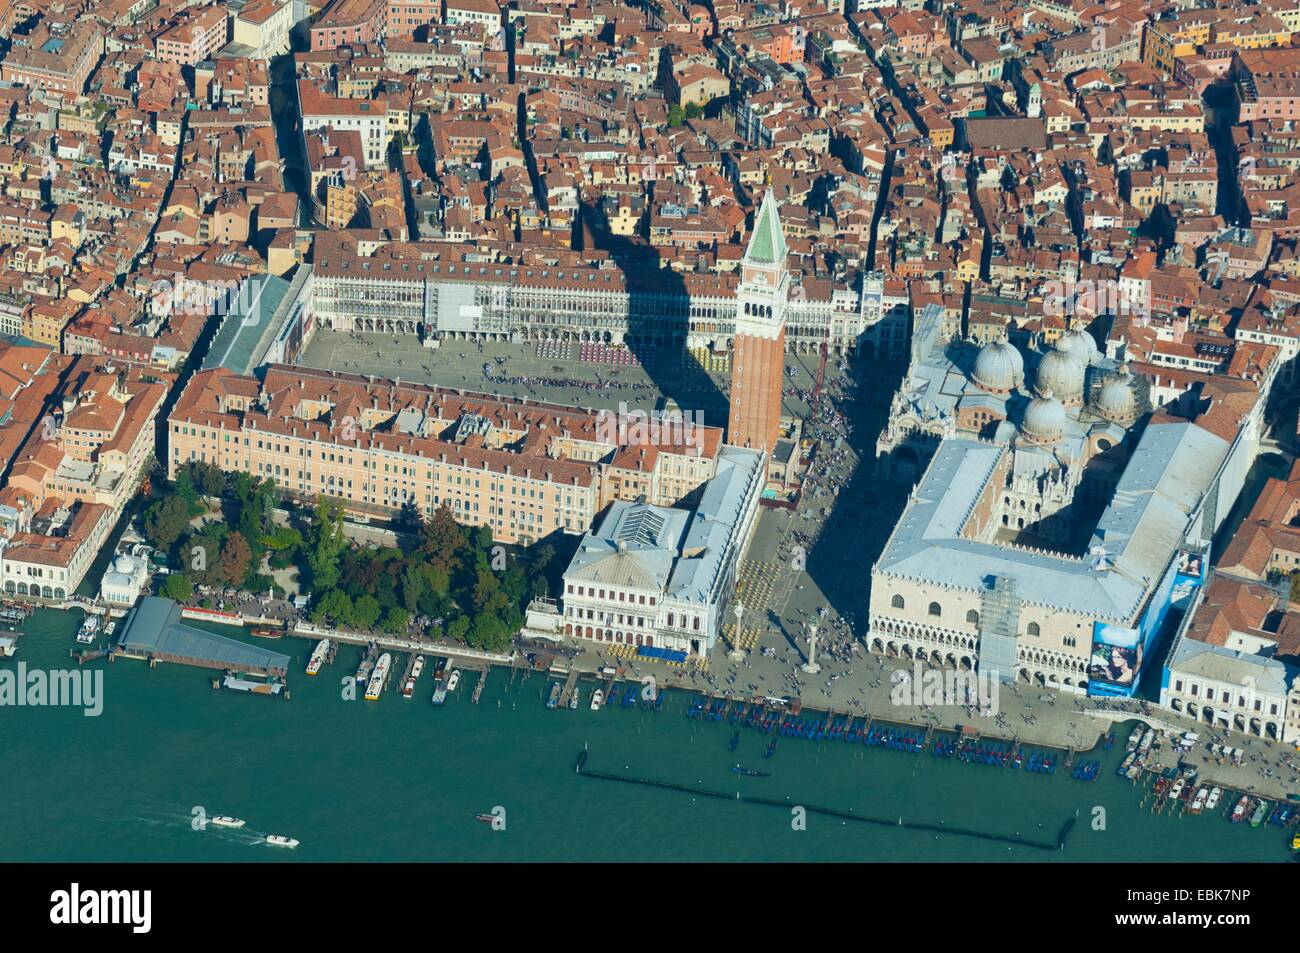 Aerial View Of Piazza San Marco Venice Italy Europe Stock Photo - Venice san marco map